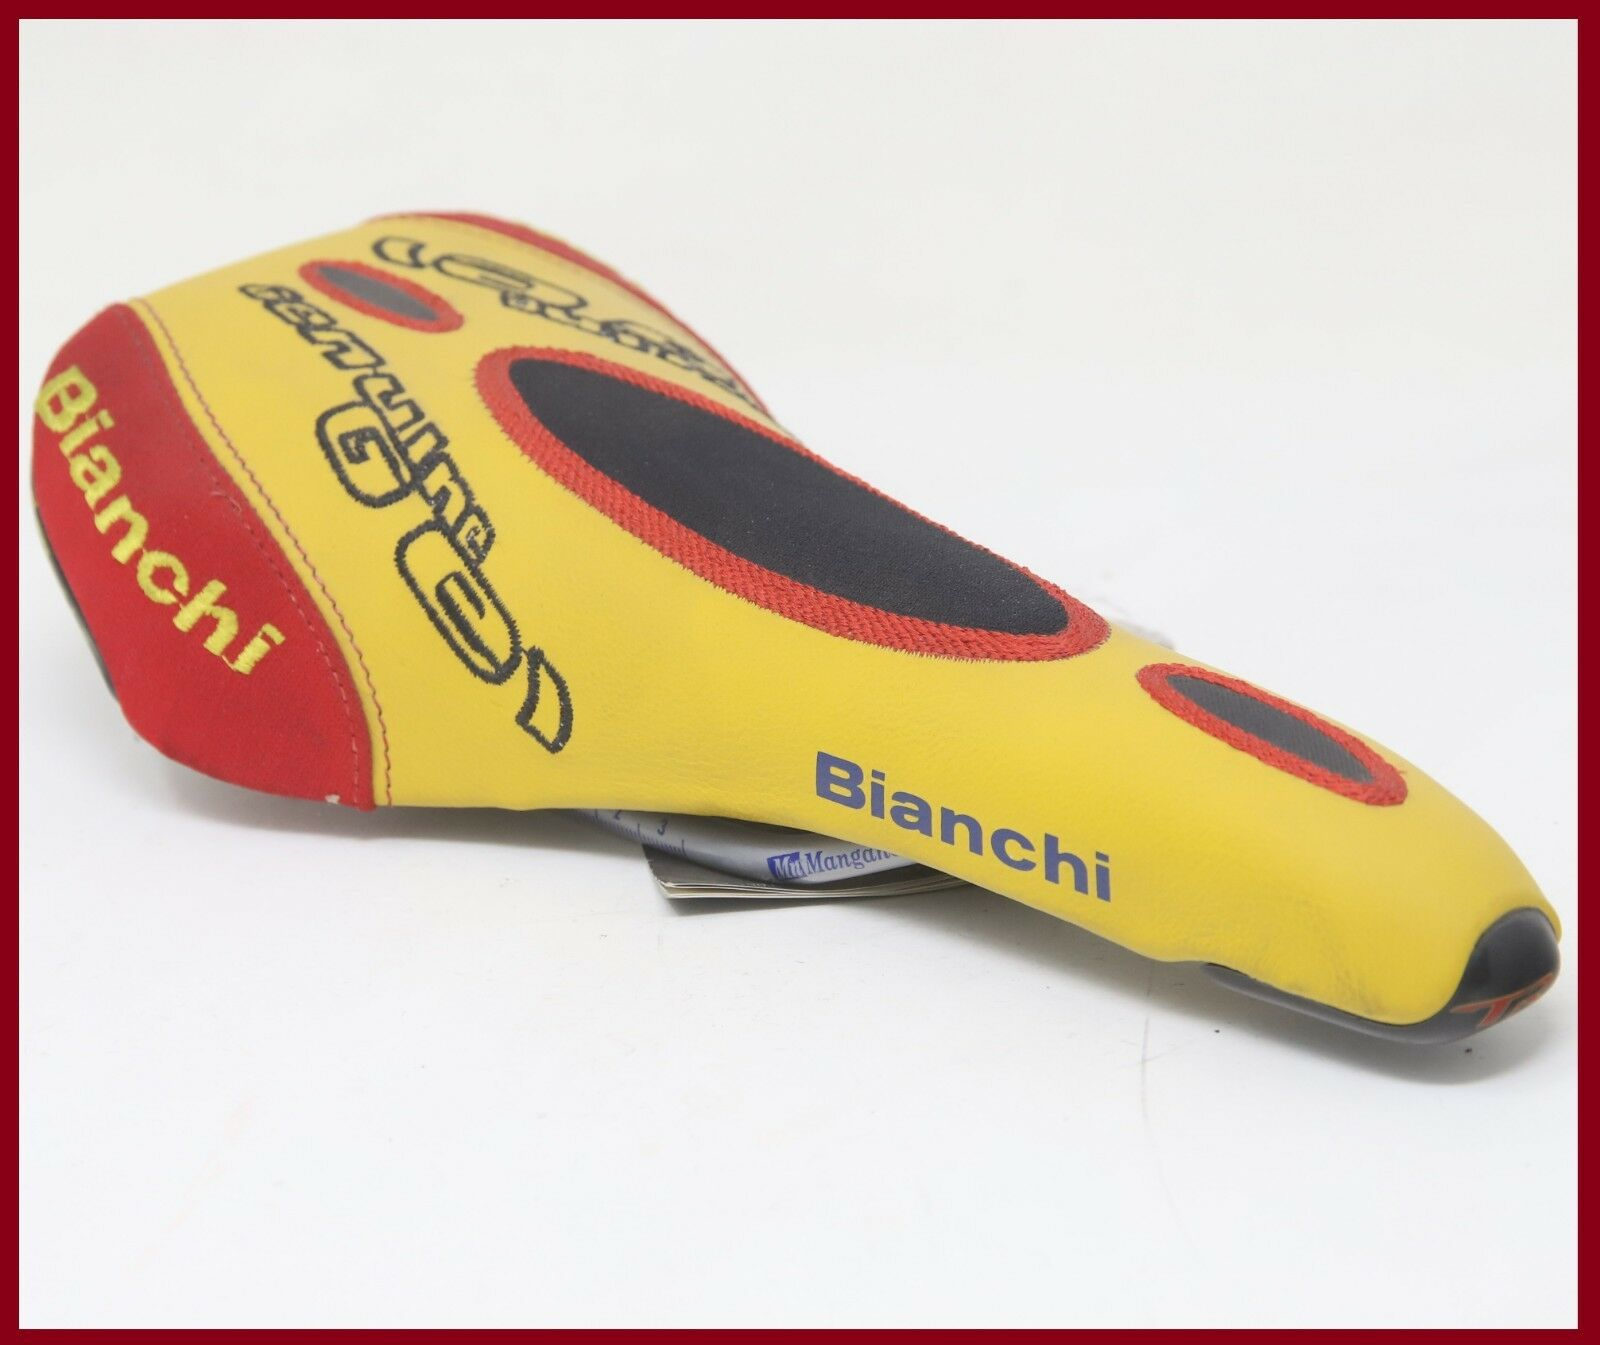 NOS  BIAN  TRIMATIC SELLE ITALIA SADDLE VINTAGE SEAT ROAD RACING BIKE BICYCLE  discount store